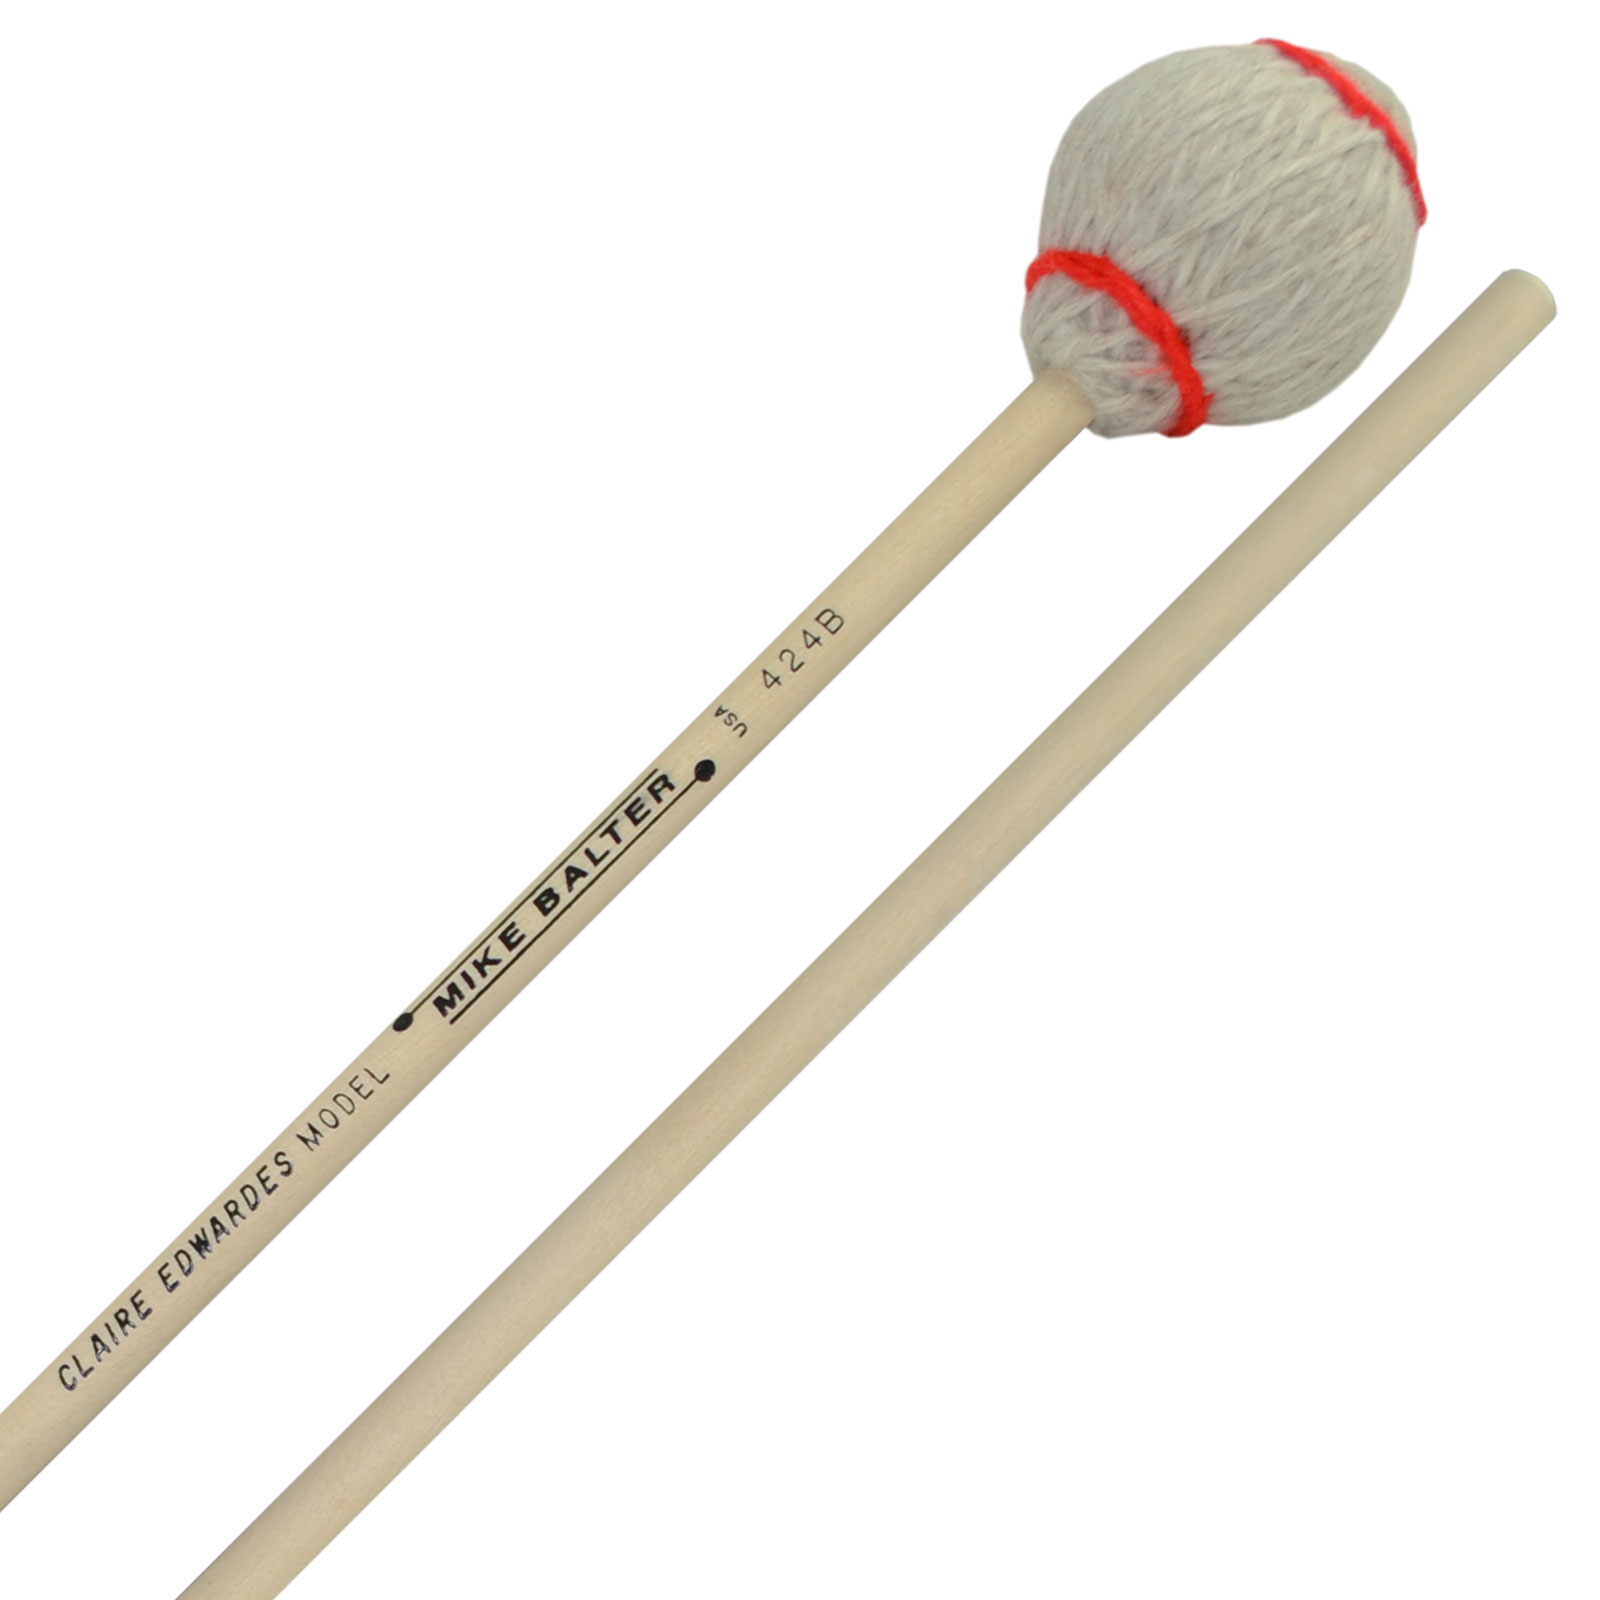 Mike Balter Claire Edwardes Signature Series Medium Soft Marimba Mallets